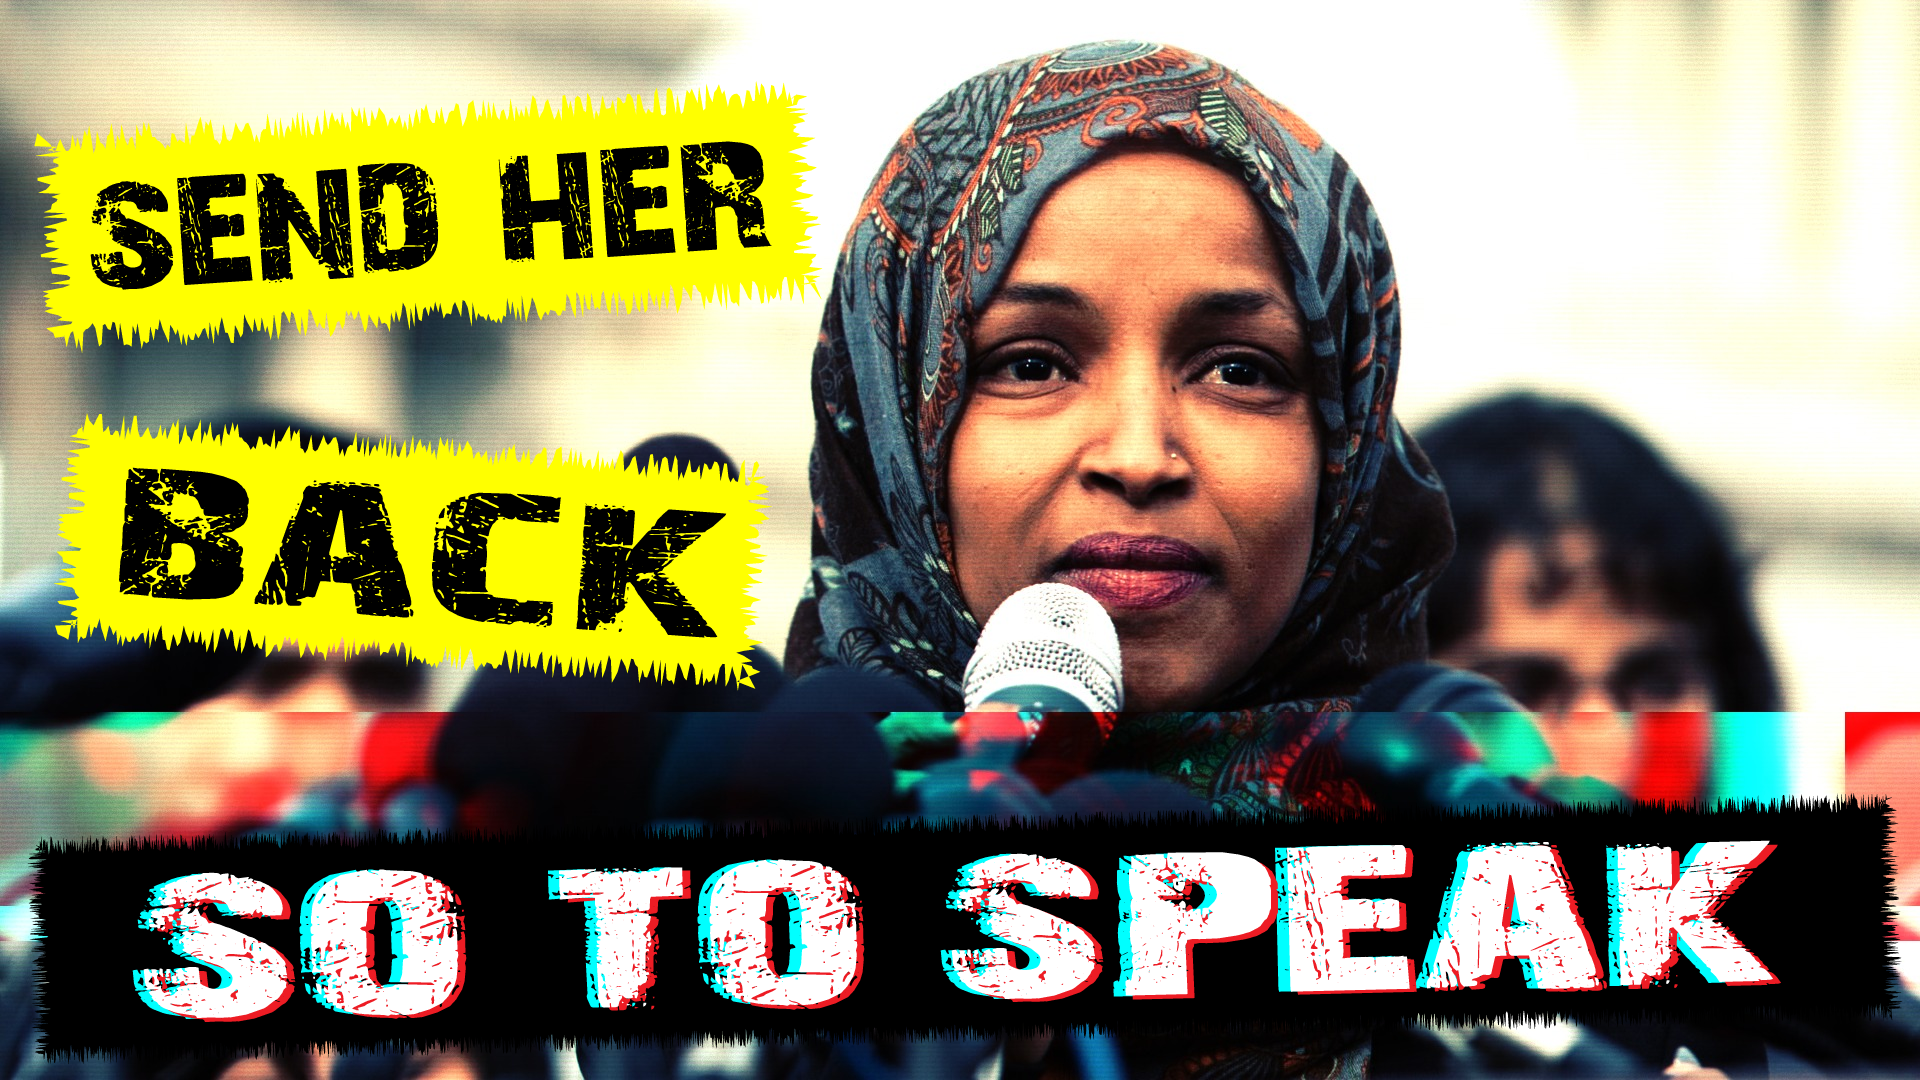 Ilhan Omar Send Her Back Married Her Brother